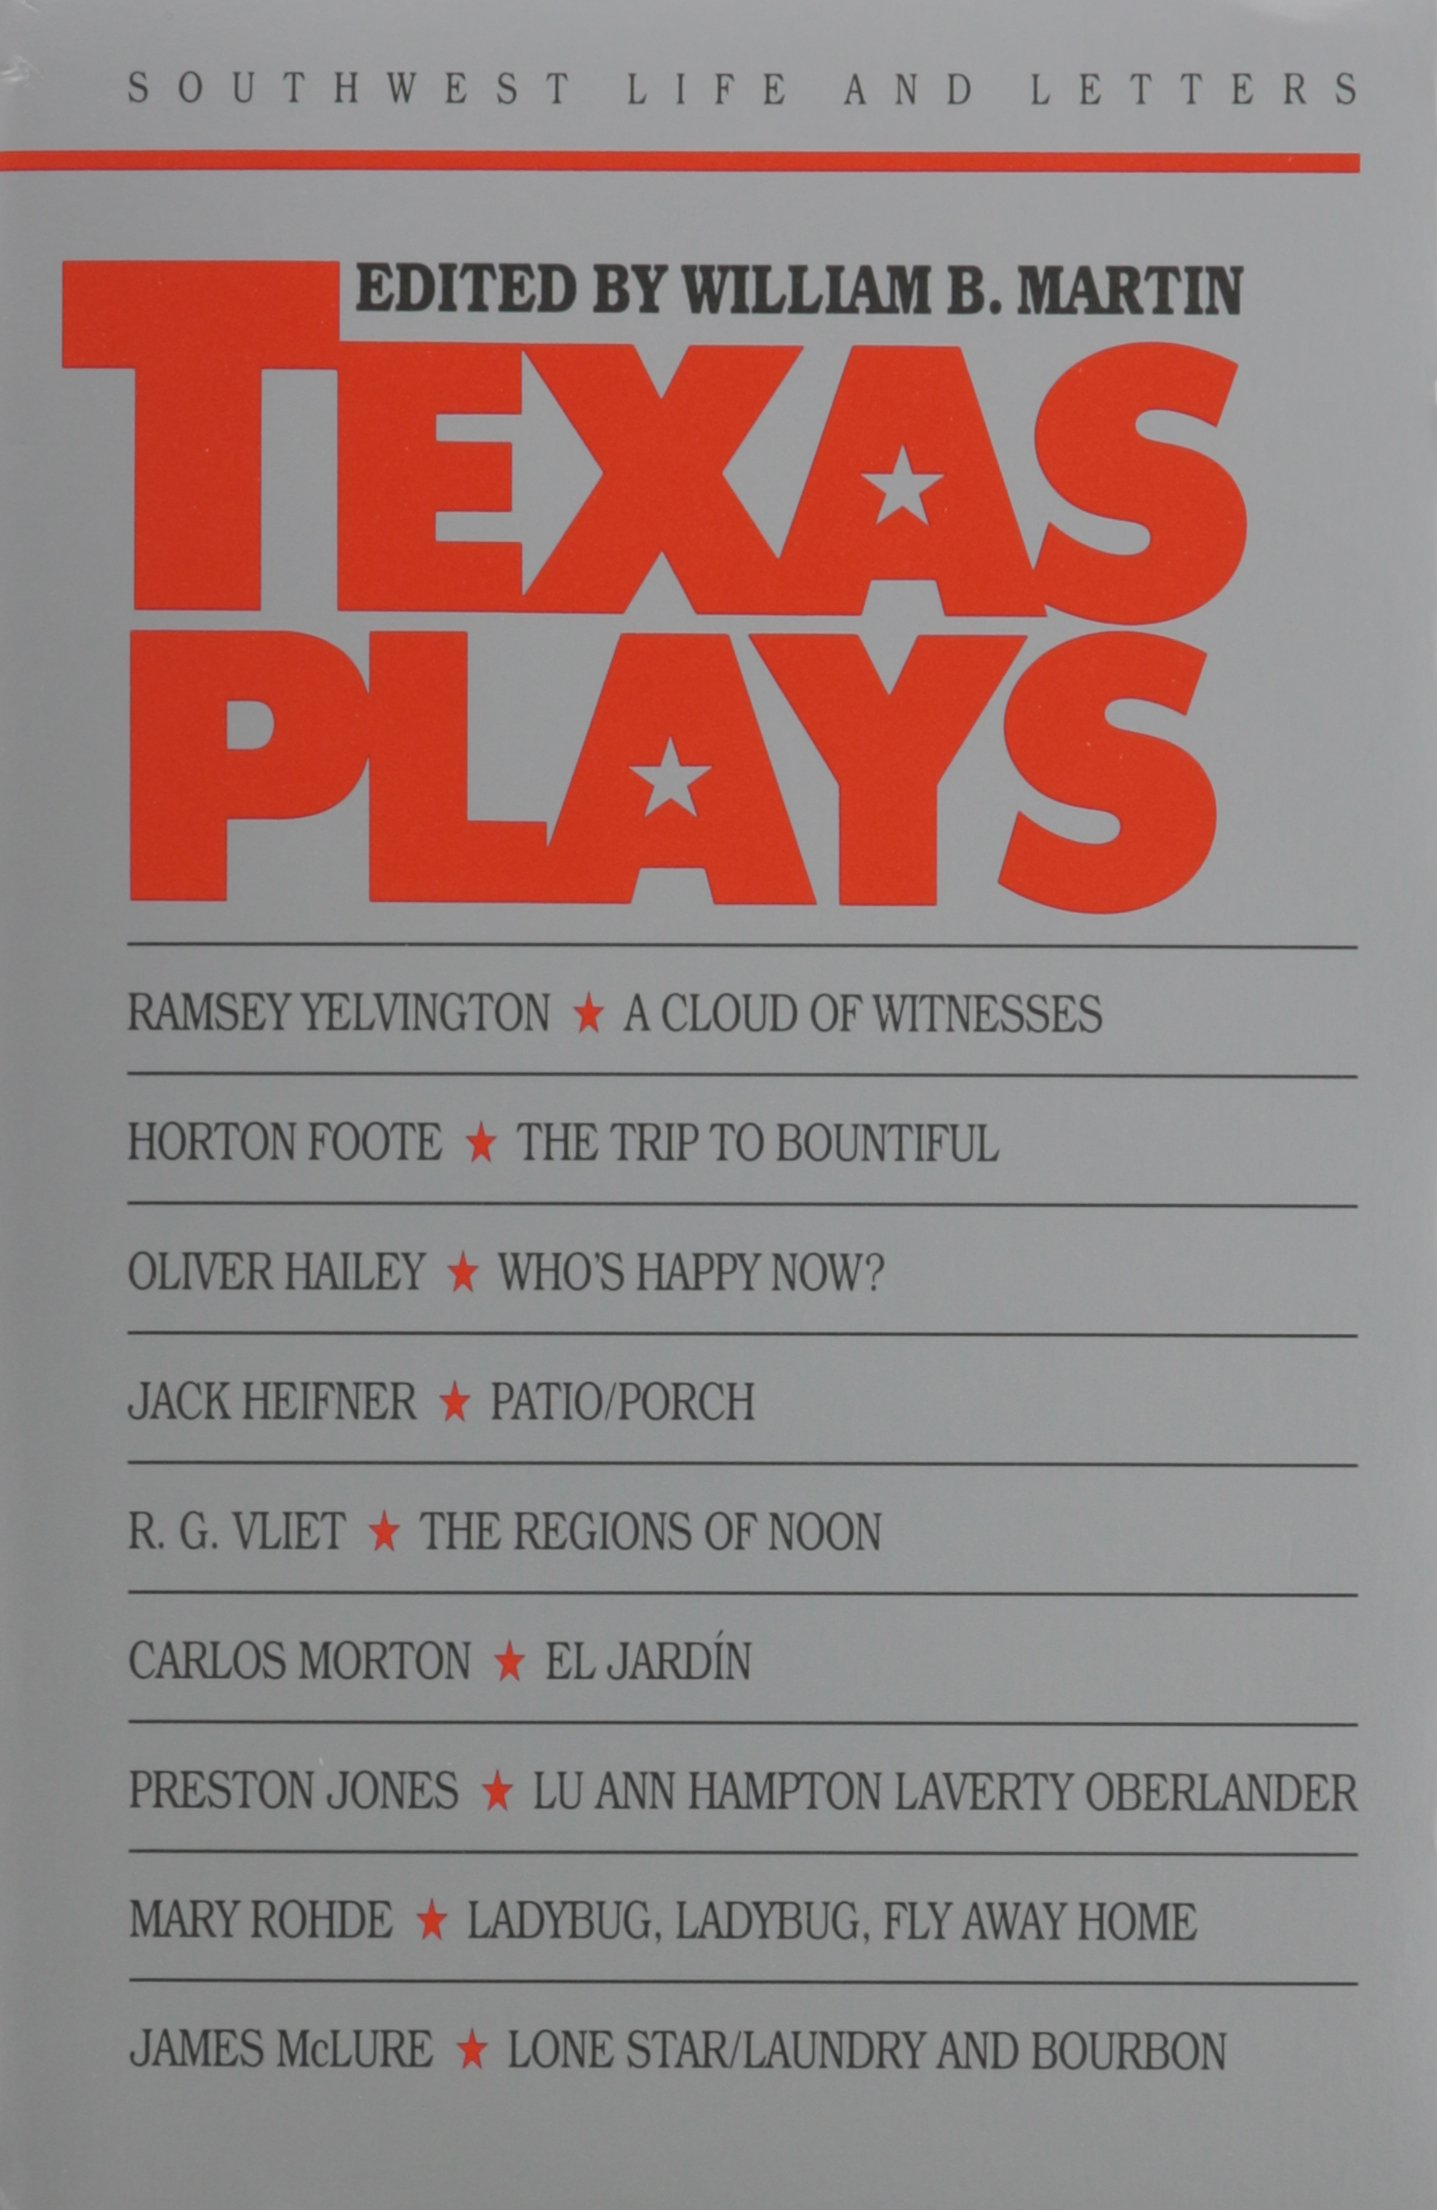 Texas Plays written by William B. Martin